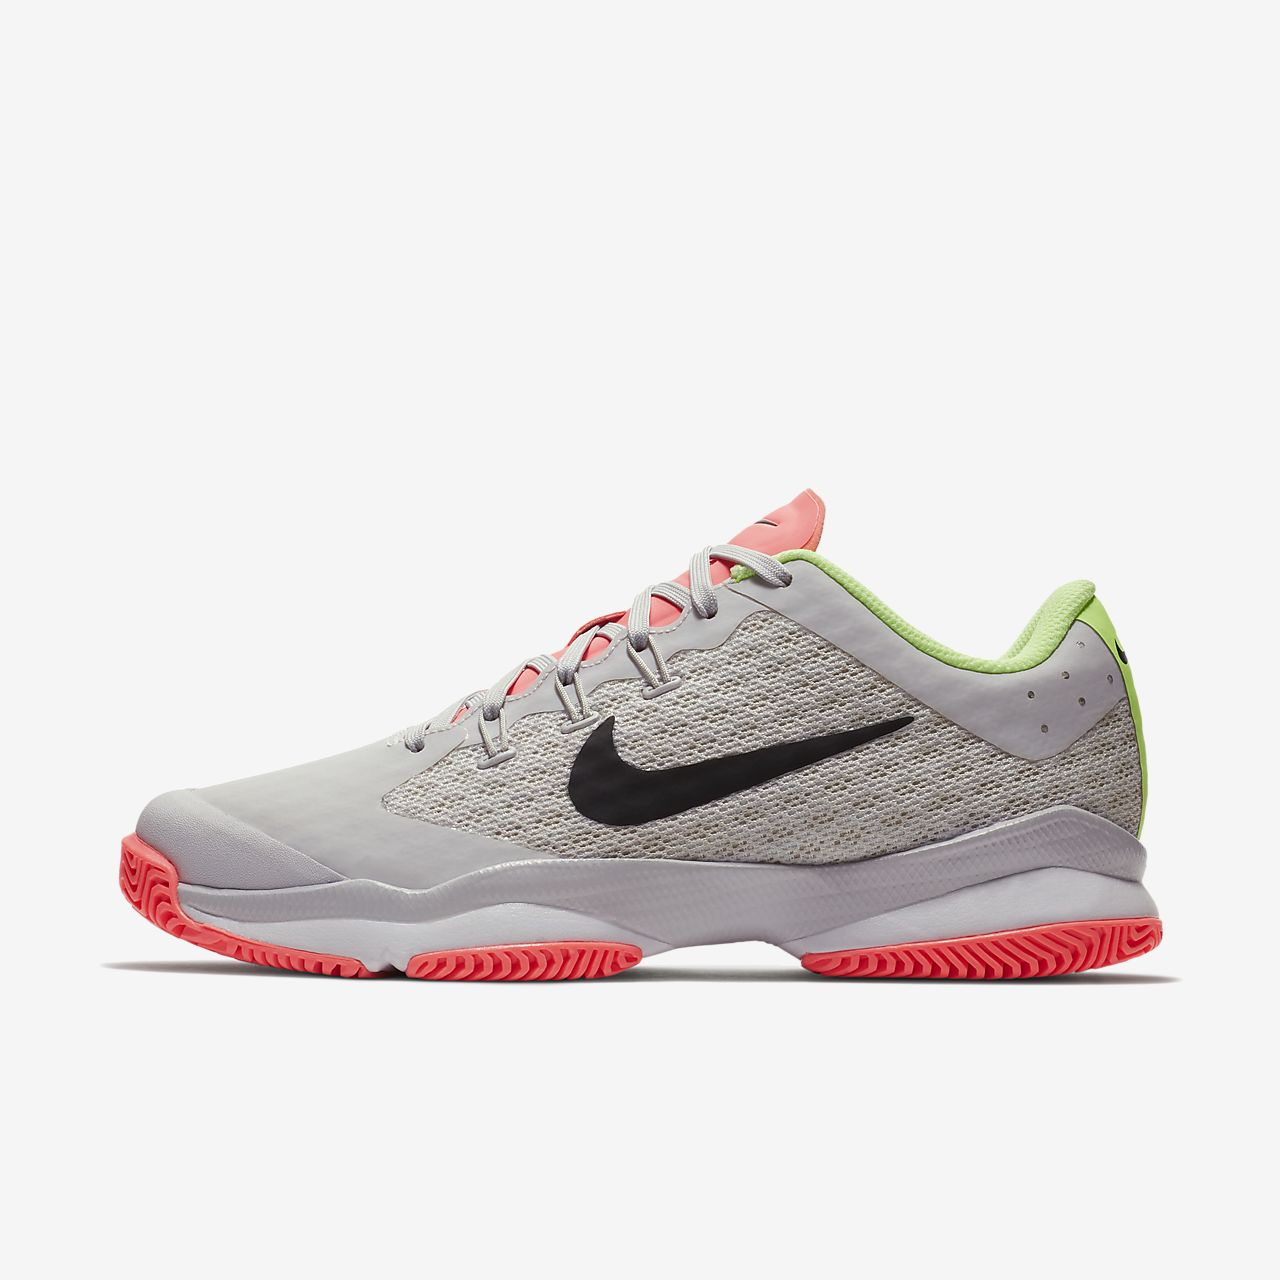 Nike Chaussures Women's Air Zoom Ultra Tennis Shoe 845046